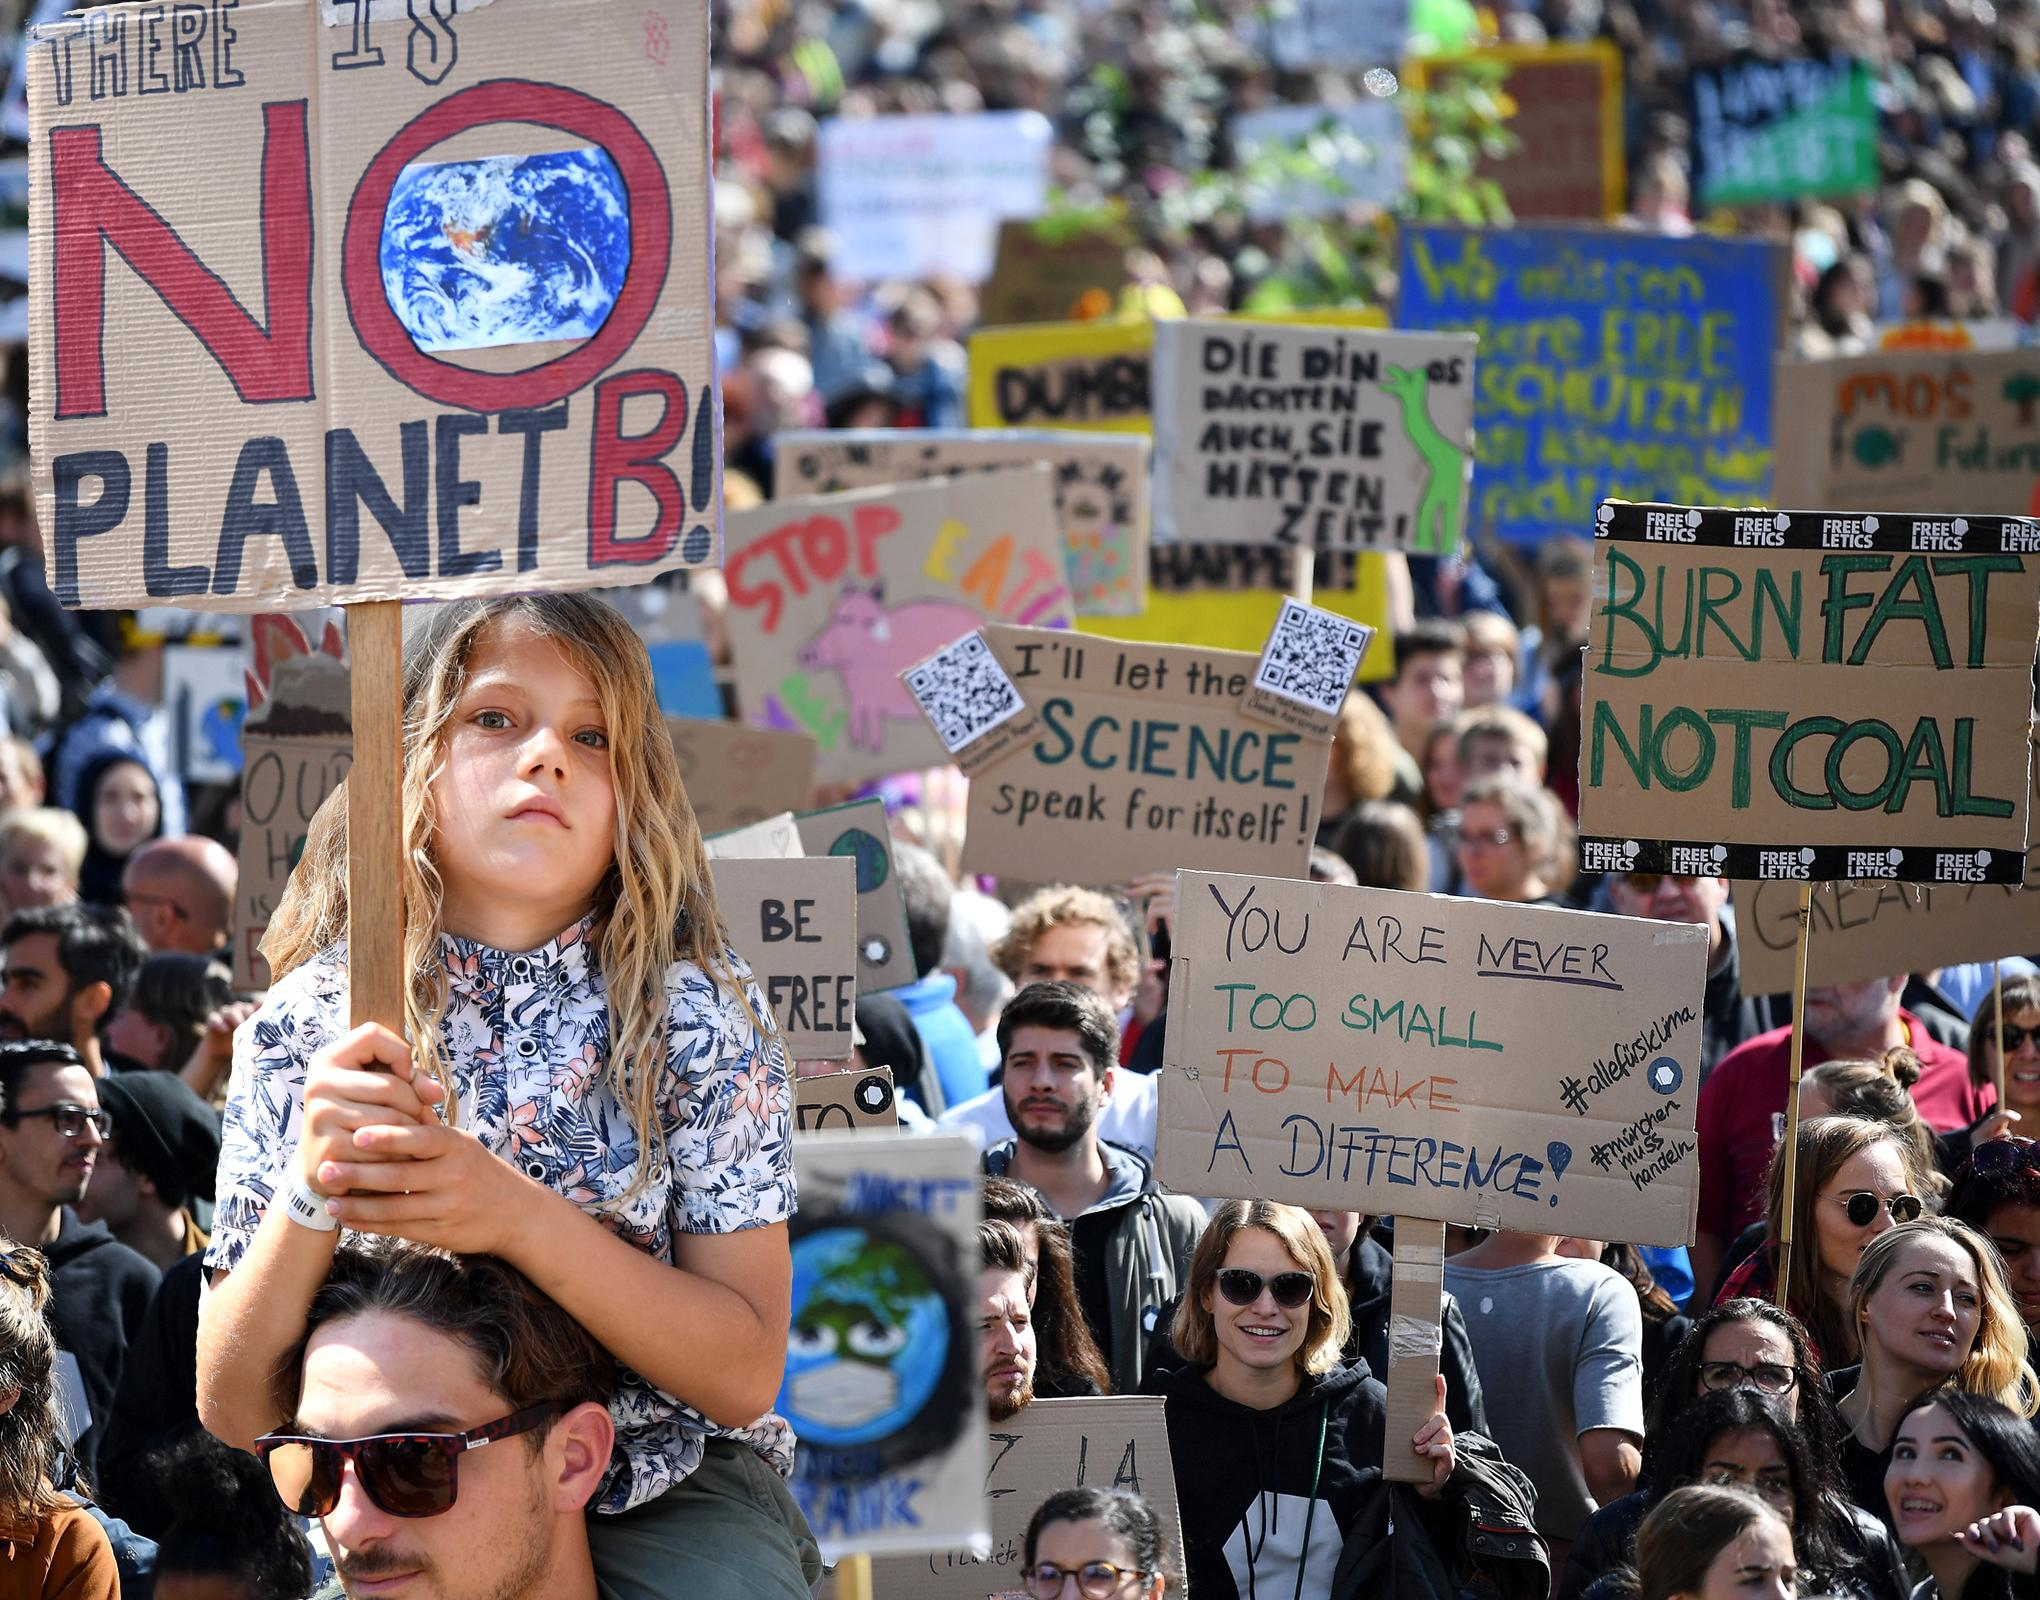 'There is no planet B': Millions take to the streets globally in what could be largest environmental protest in history